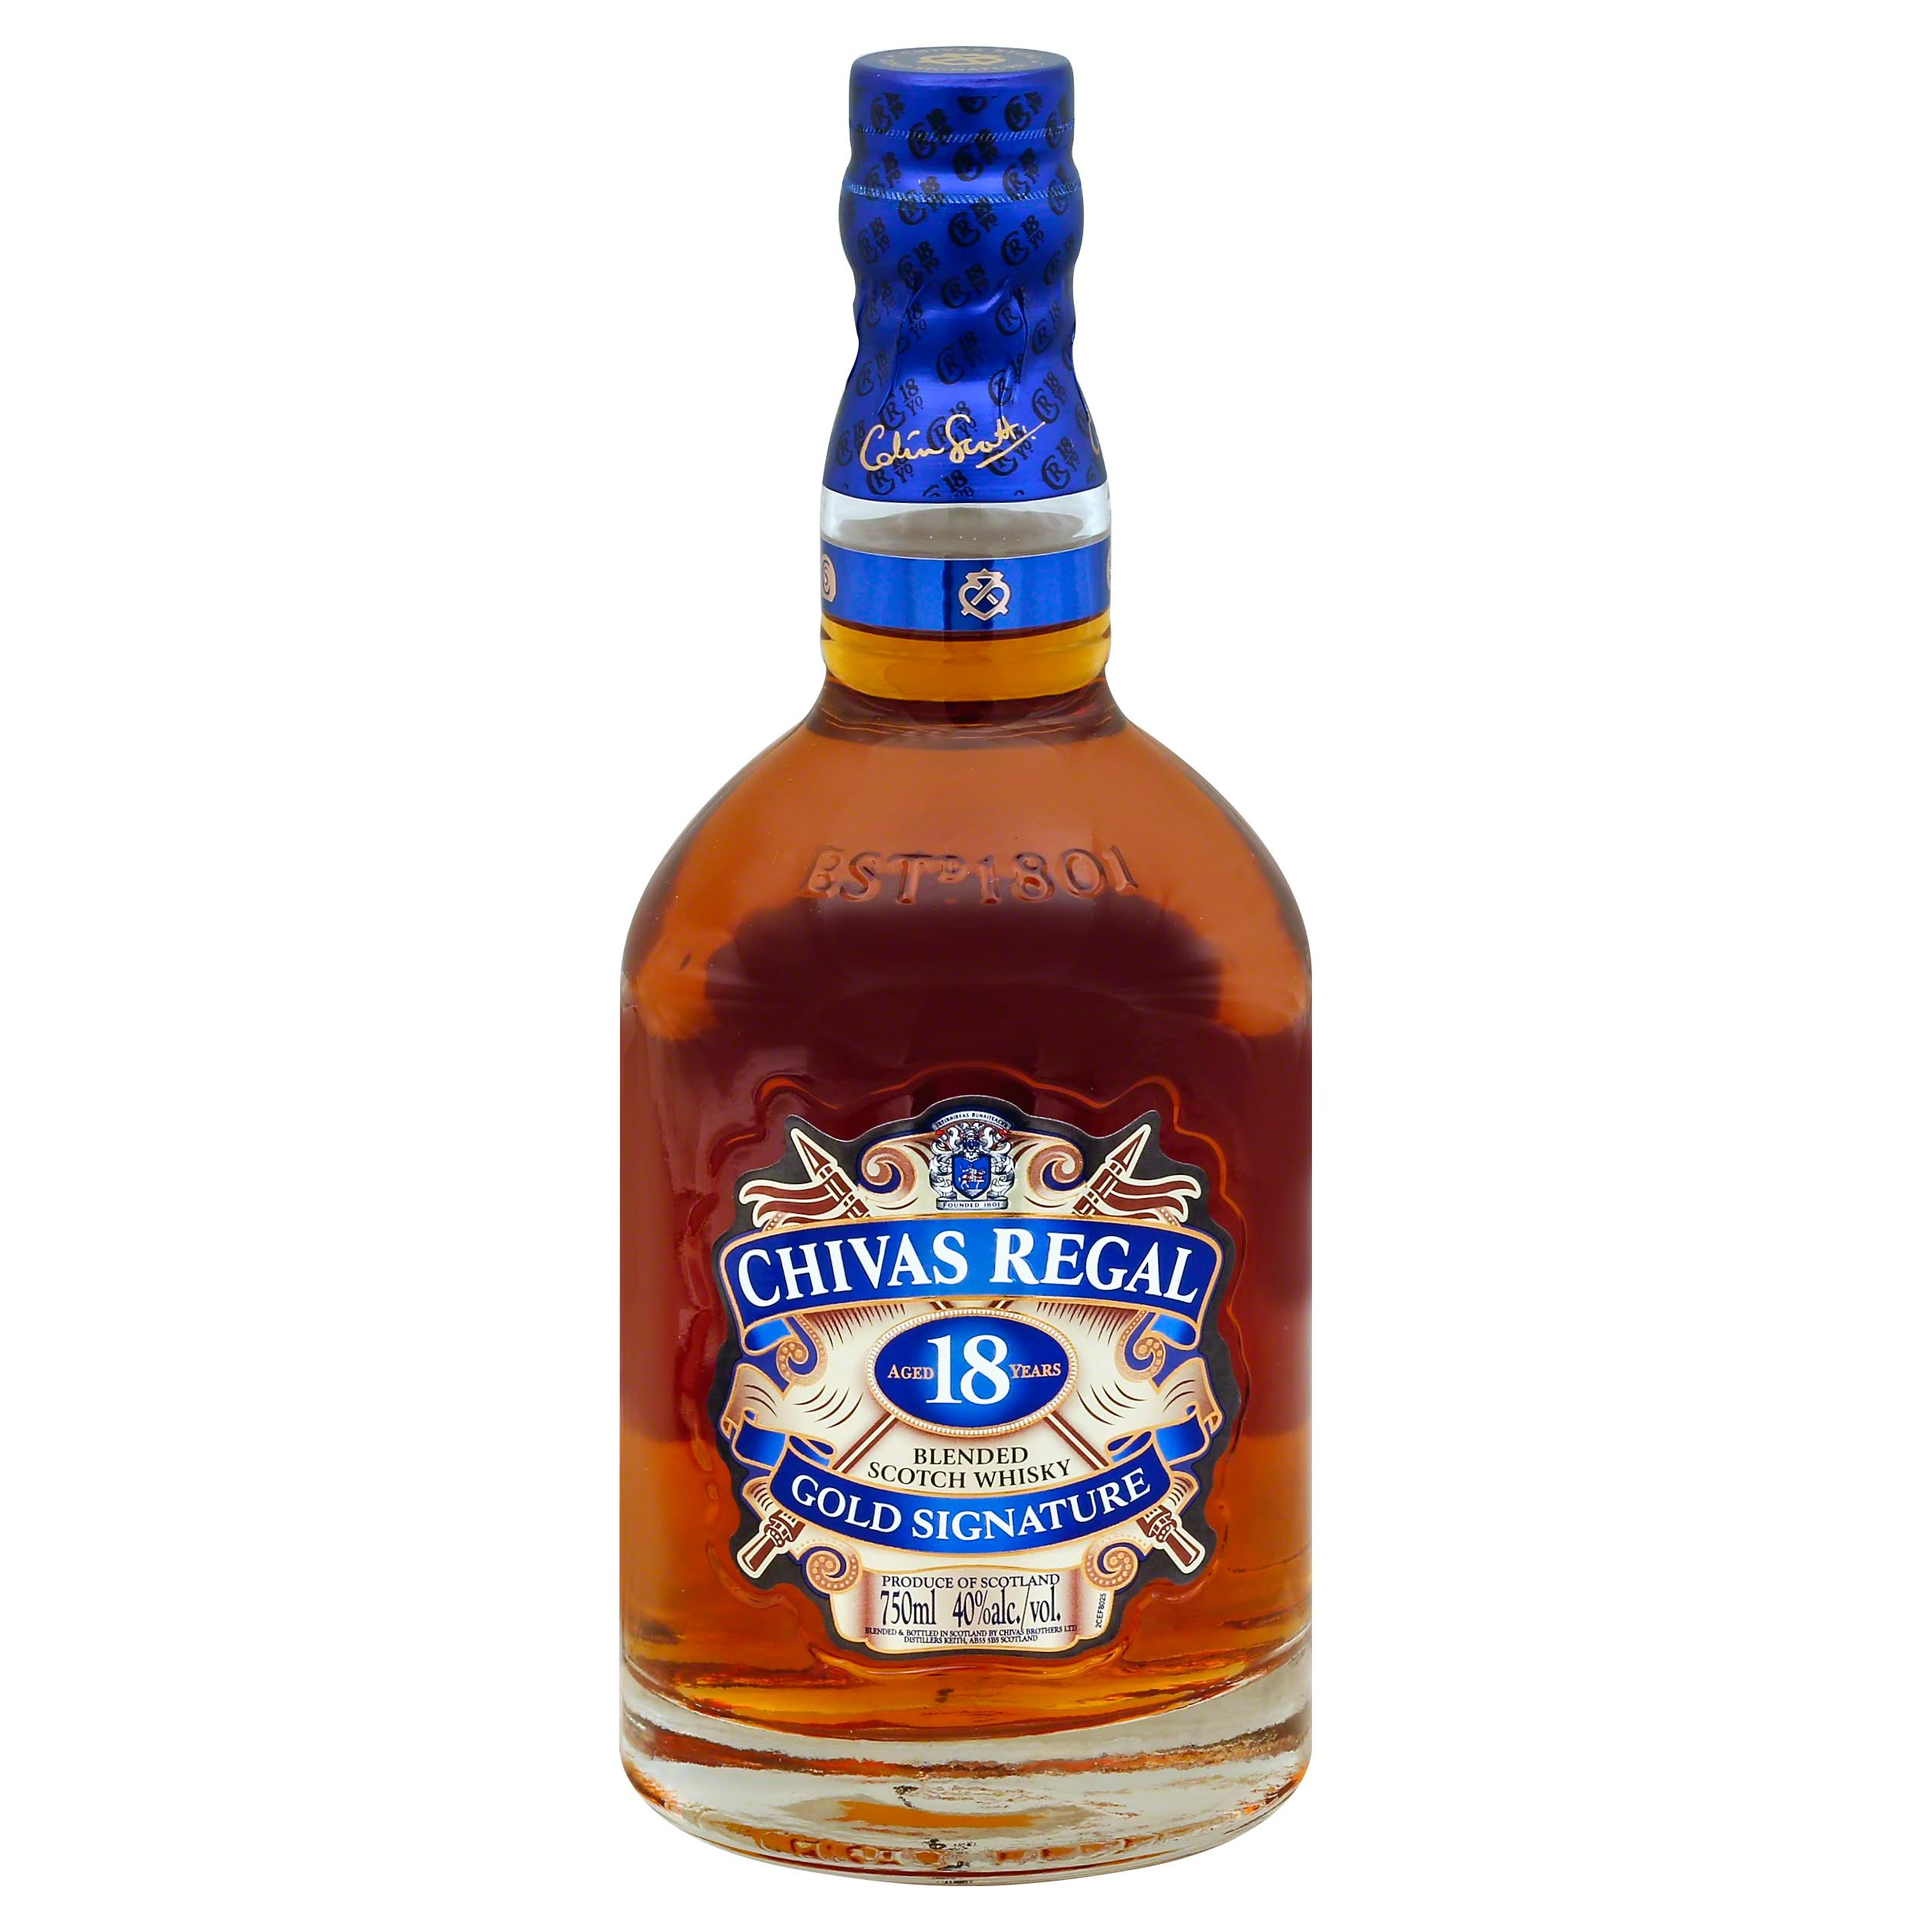 Chivas Regal Scotch Wiskey - 750ml